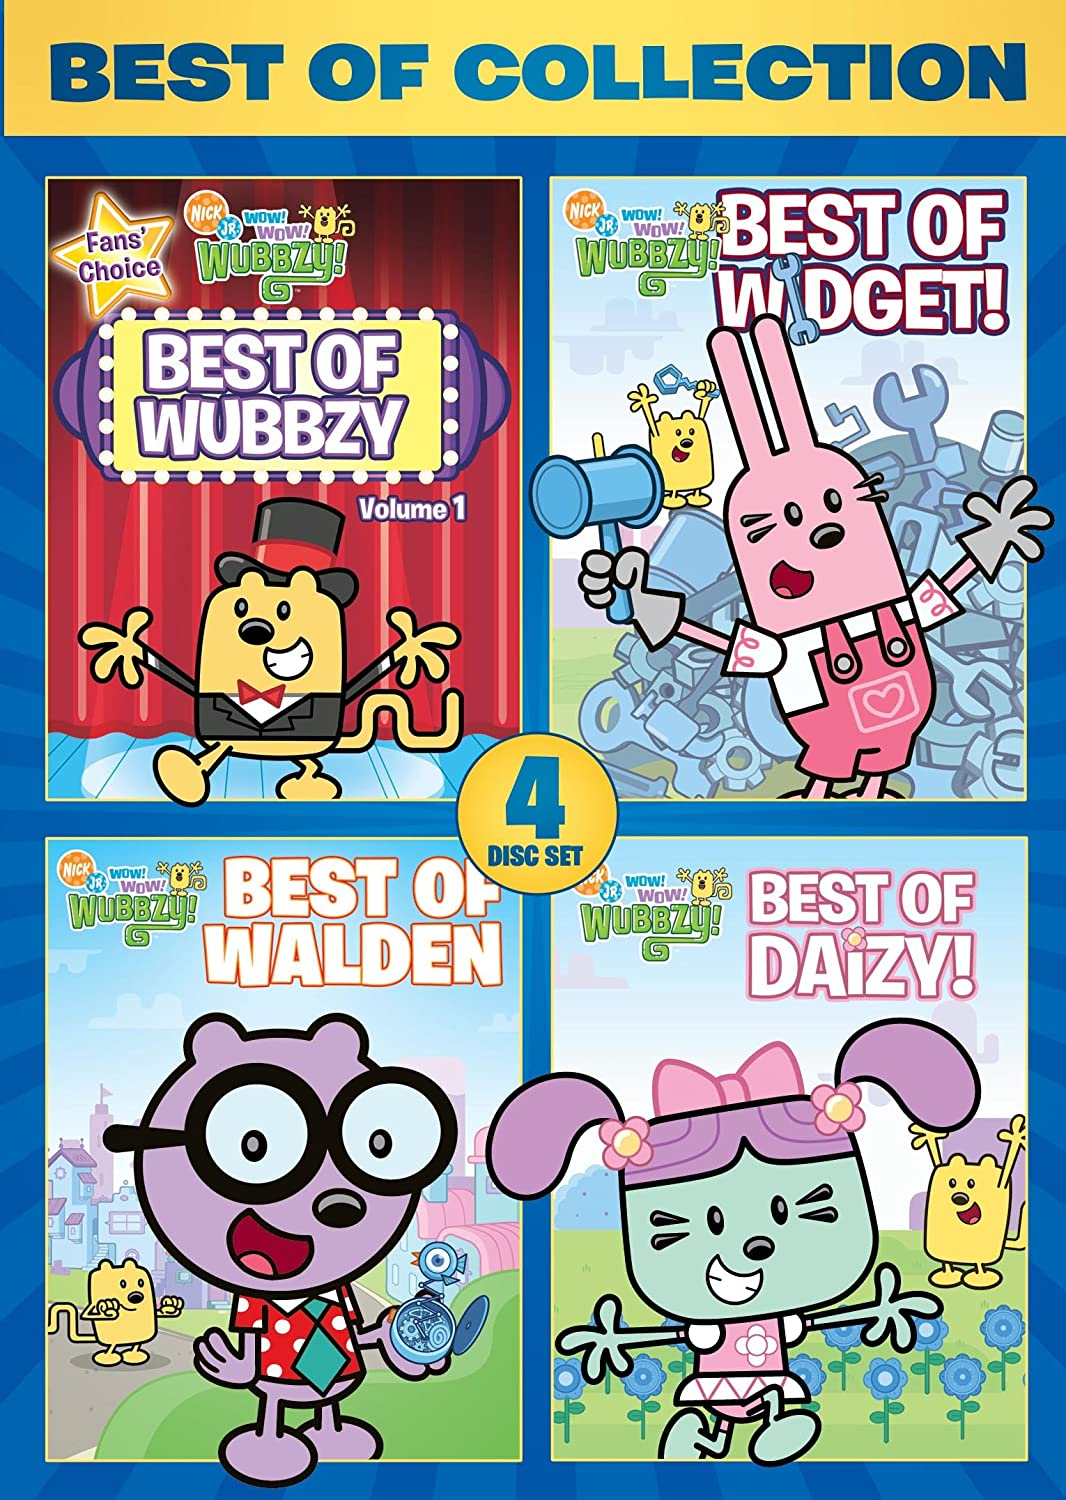 7 Kids And Us: Wow Wow Wubbzy The Best Of....DVD Review